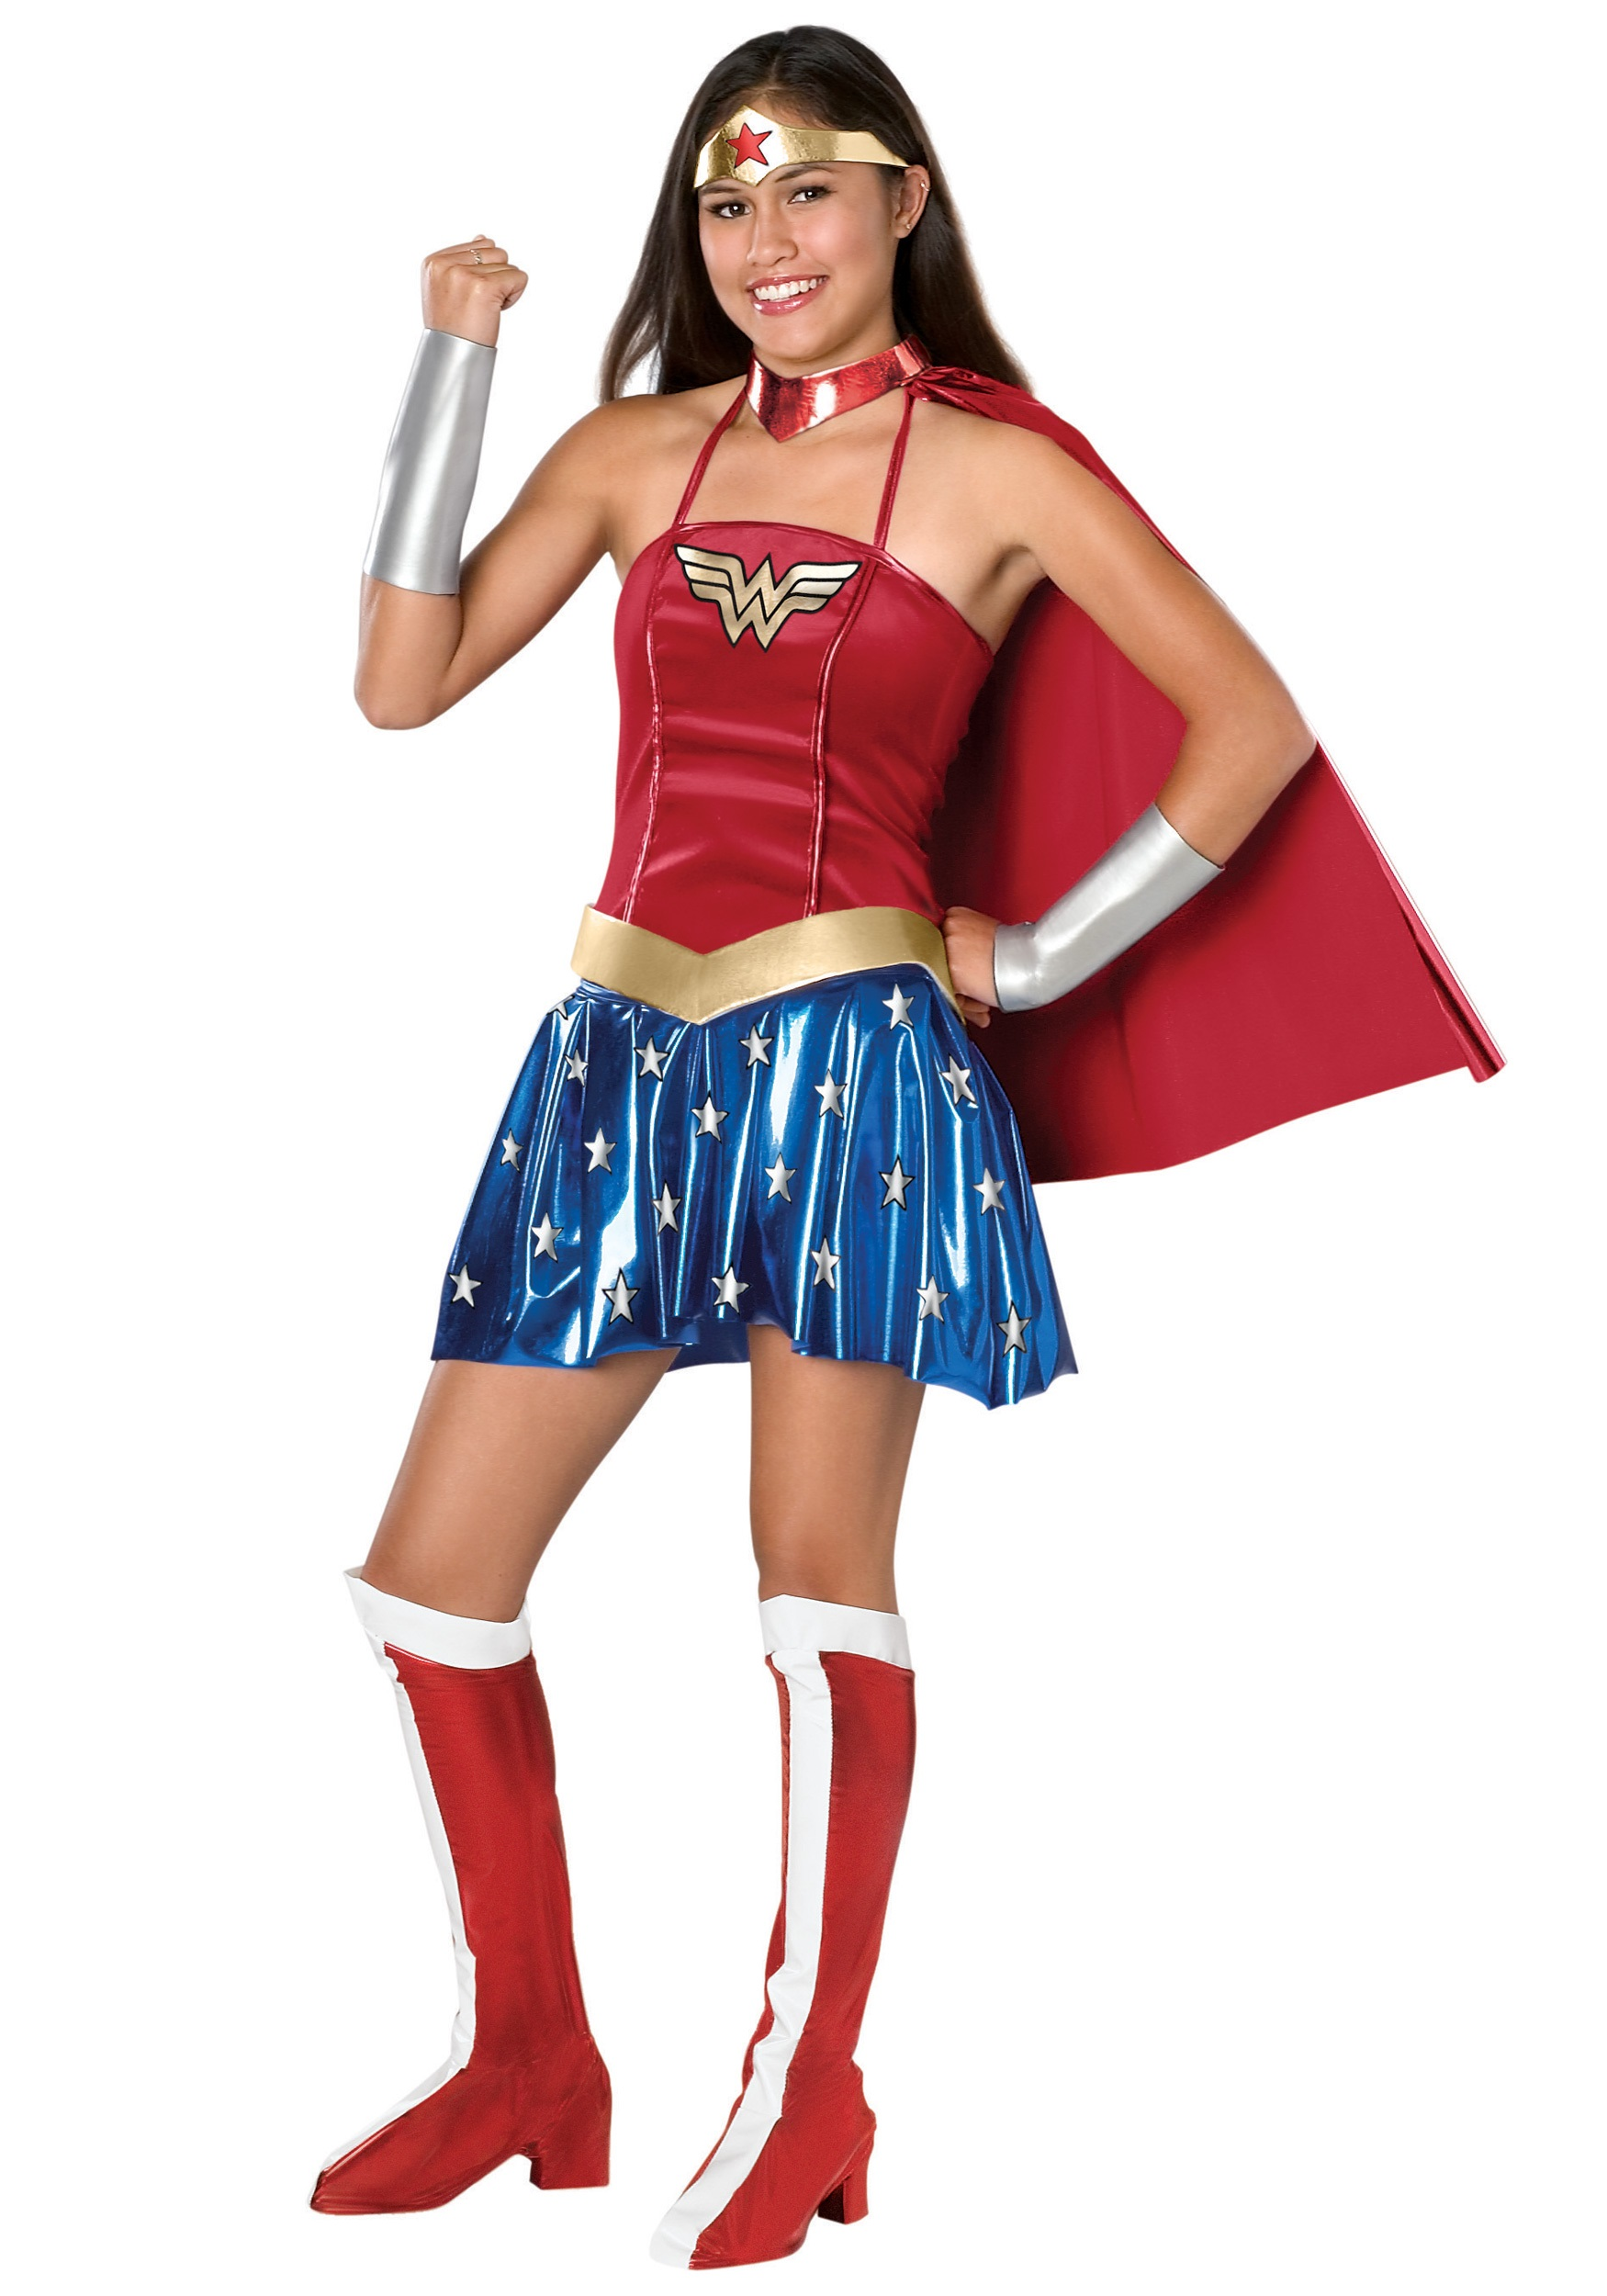 You searched for: wonder woman costume! Etsy is the home to thousands of handmade, vintage, and one-of-a-kind products and gifts related to your search. No matter what you're looking for or where you are in the world, our global marketplace of sellers can help you find unique and affordable options. Let's get started!